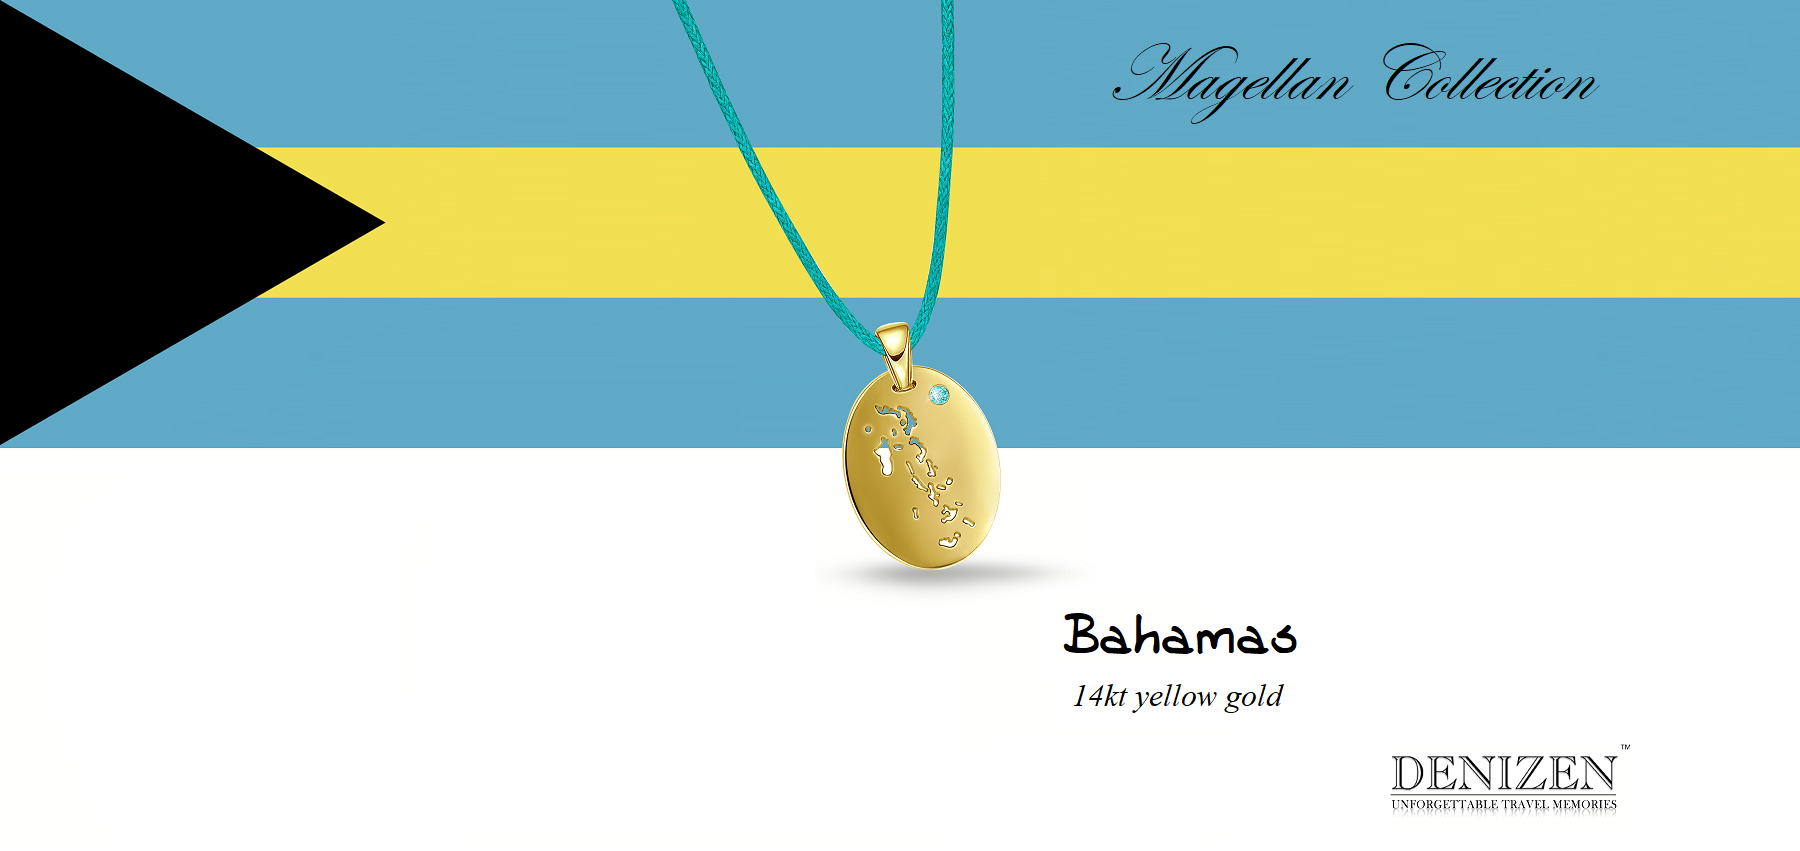 DENIZEN bracelet of the Bahamas in Magellan collection 14kt gold